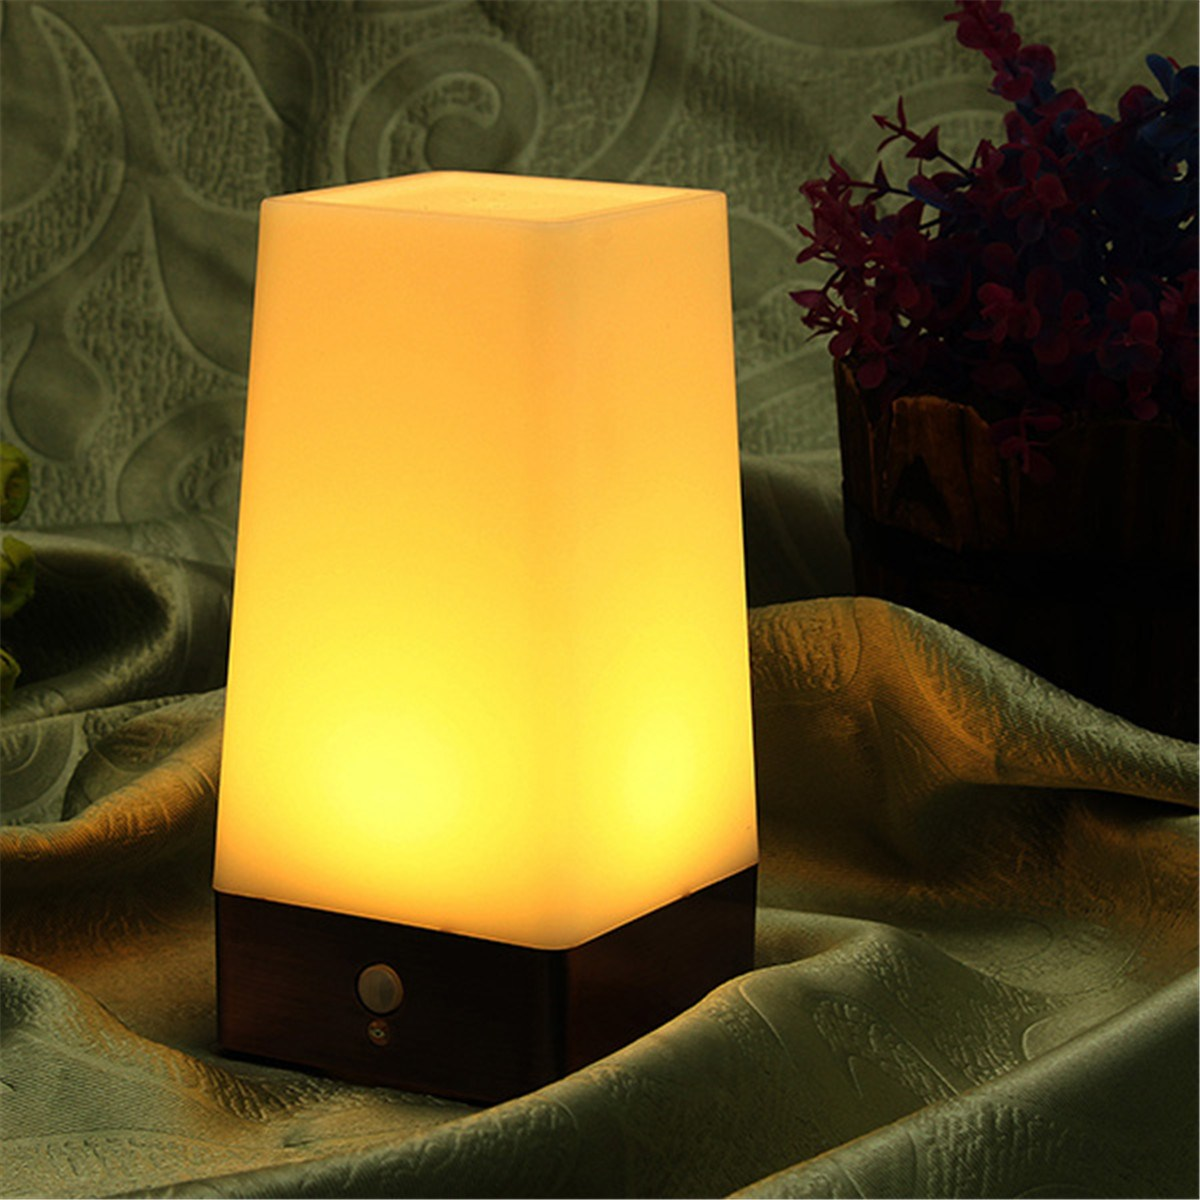 Wh wholesale vintage lead crystal table lamp buy cheap - Wireless Vintage Led Human Body Sensor Motion Night Light Dual Control Battery Powered Square Warm White